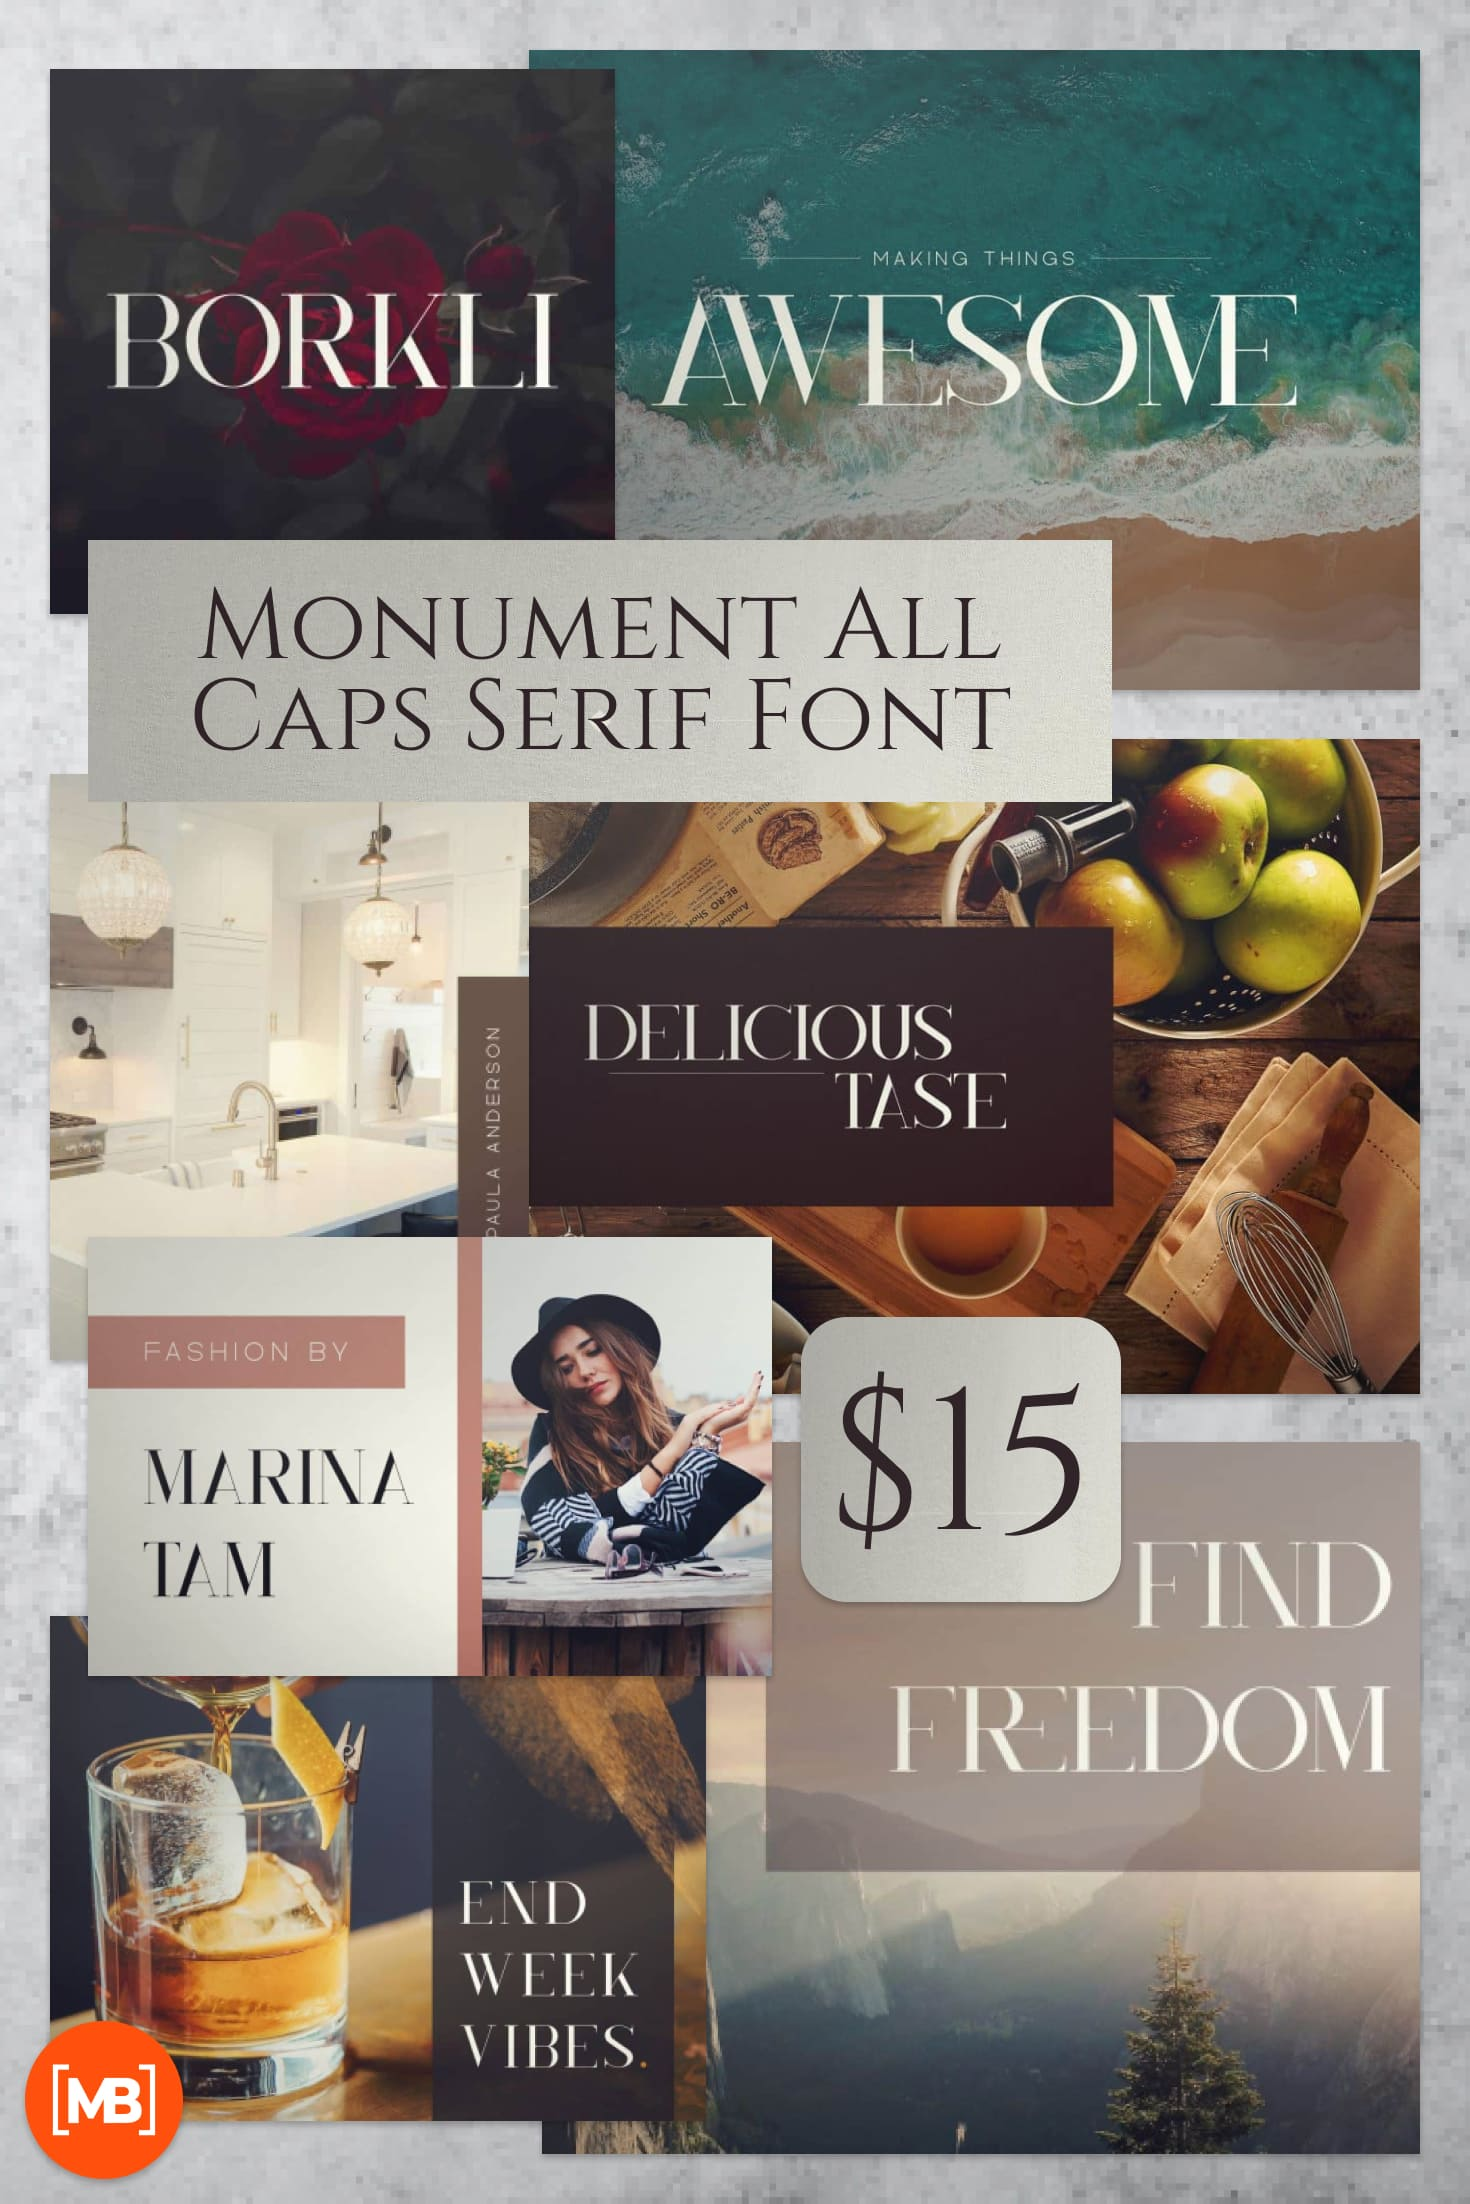 Pinterest Image: Monument All Caps Serif Font - $15.